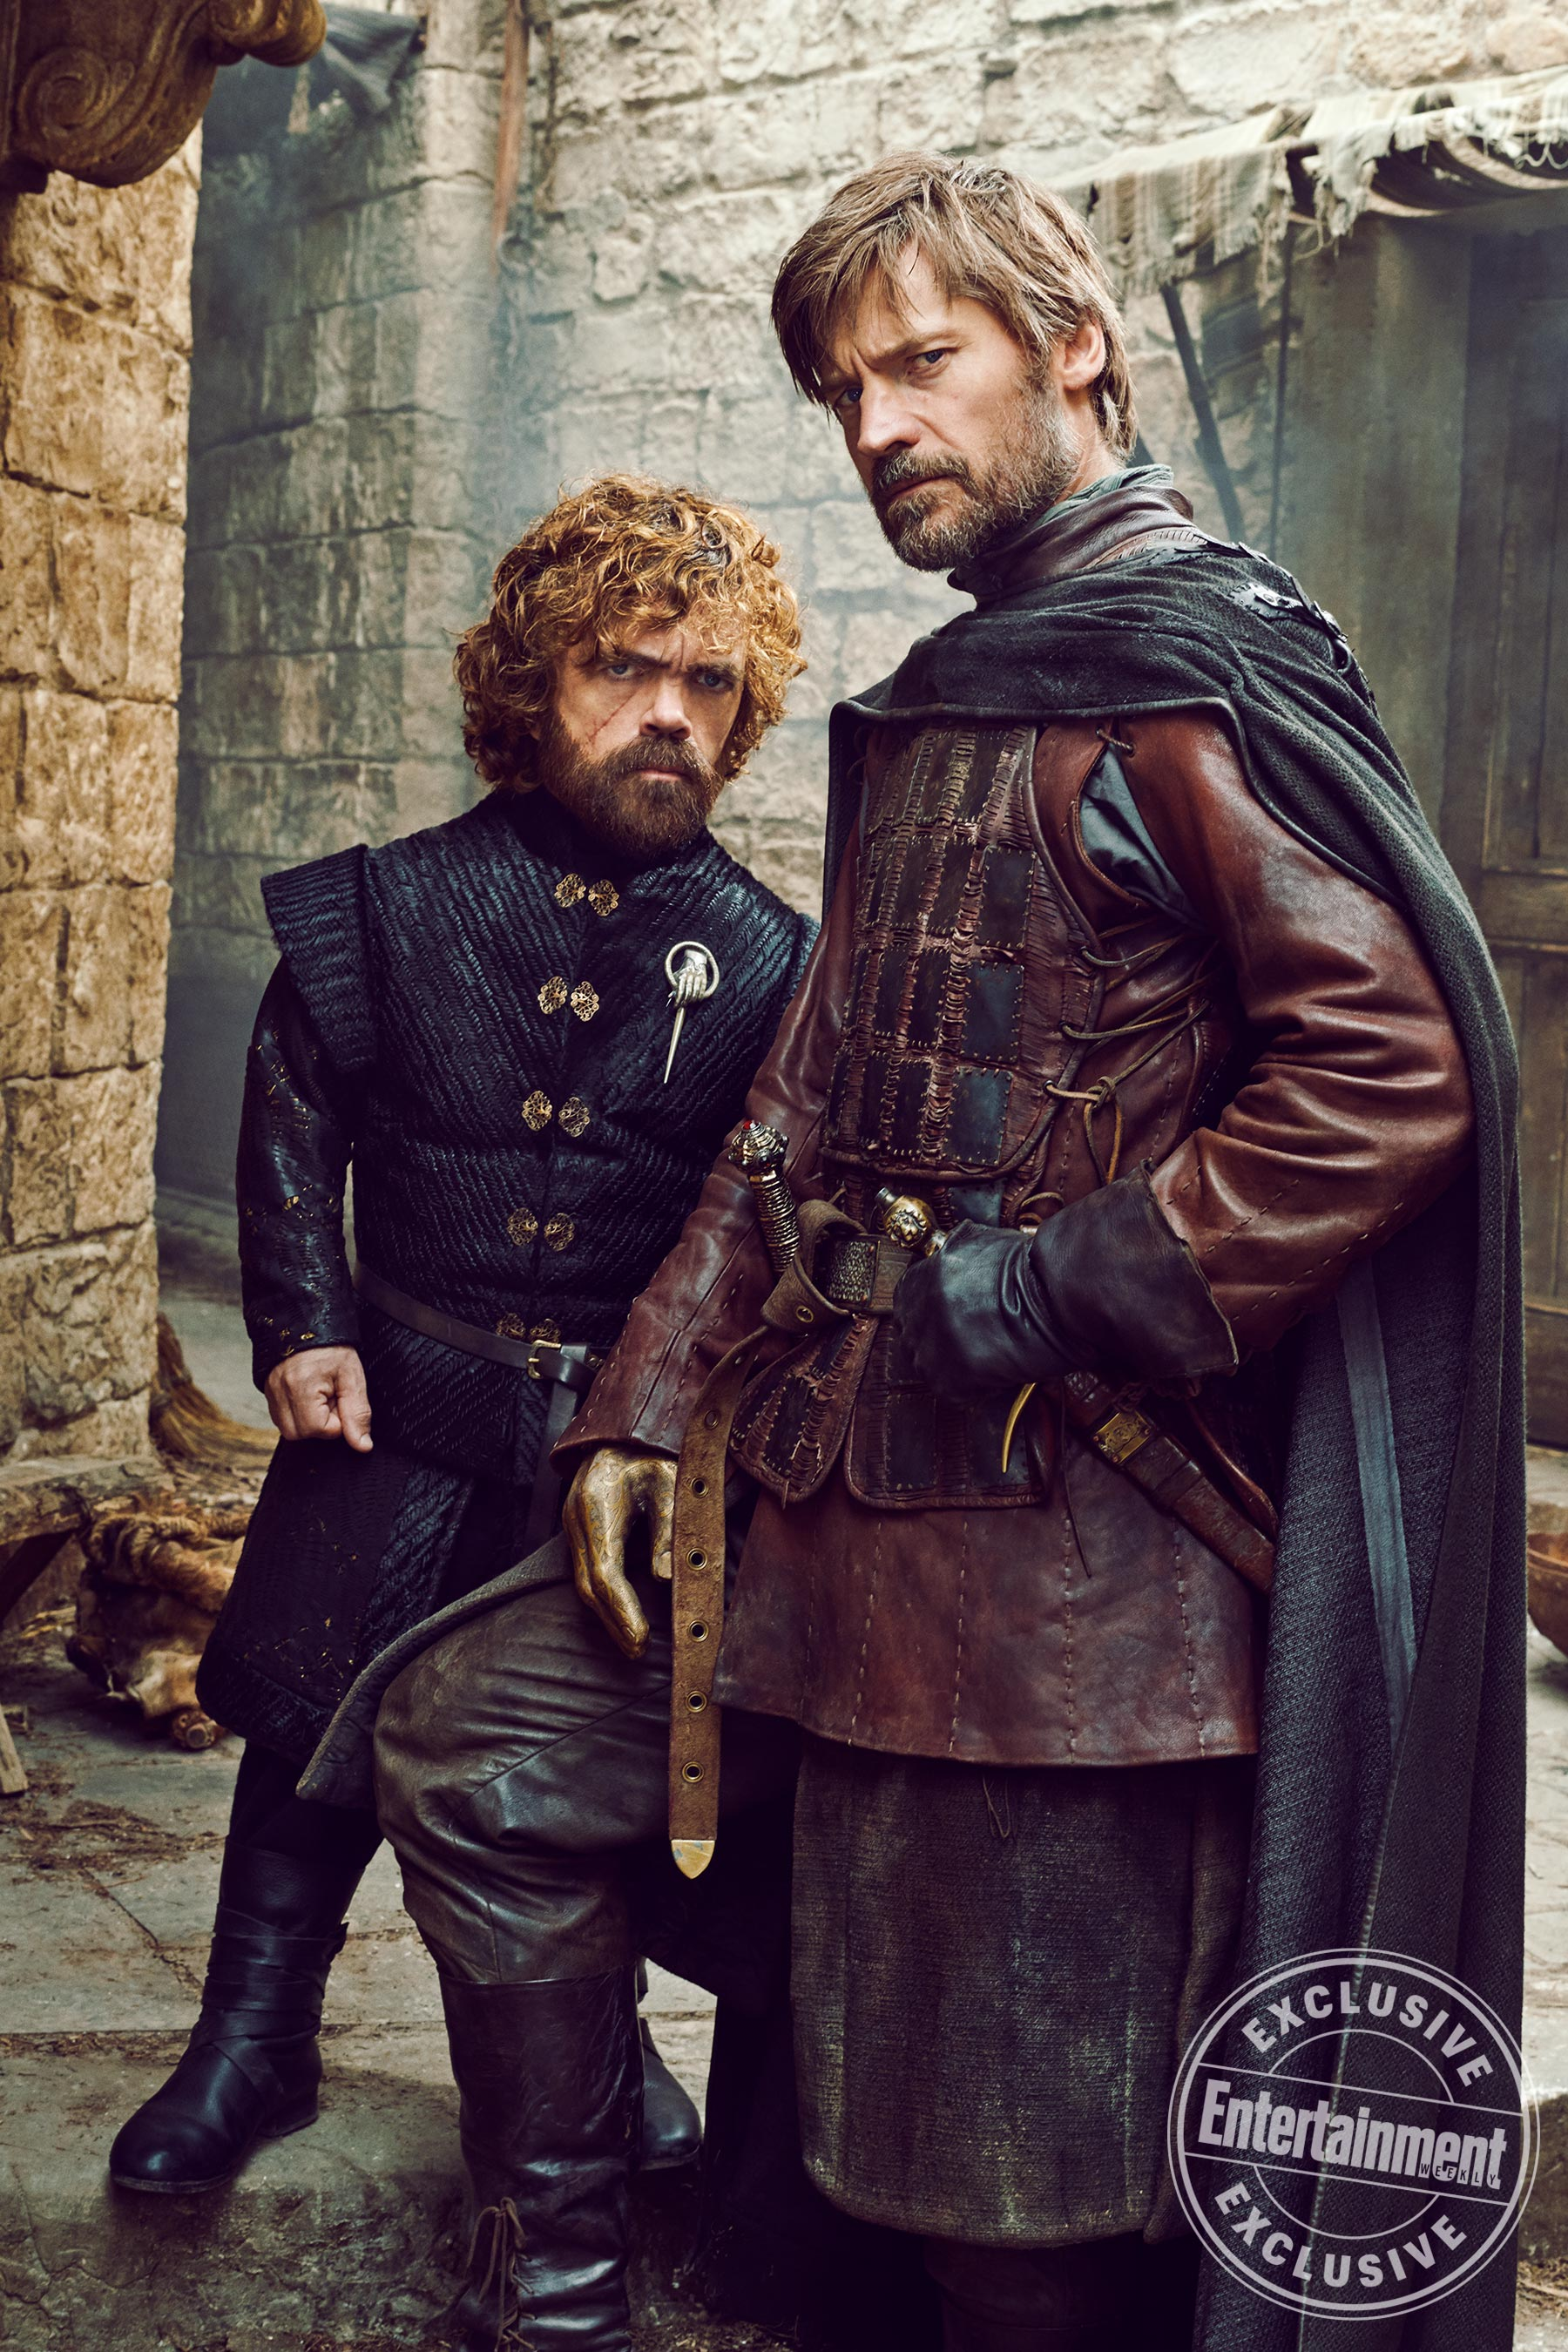 Entertainment Weekly Photoshoot - 2019 - Peter Dinklage as Tyrion and Nikolaj Coster-Waldau as Jaime